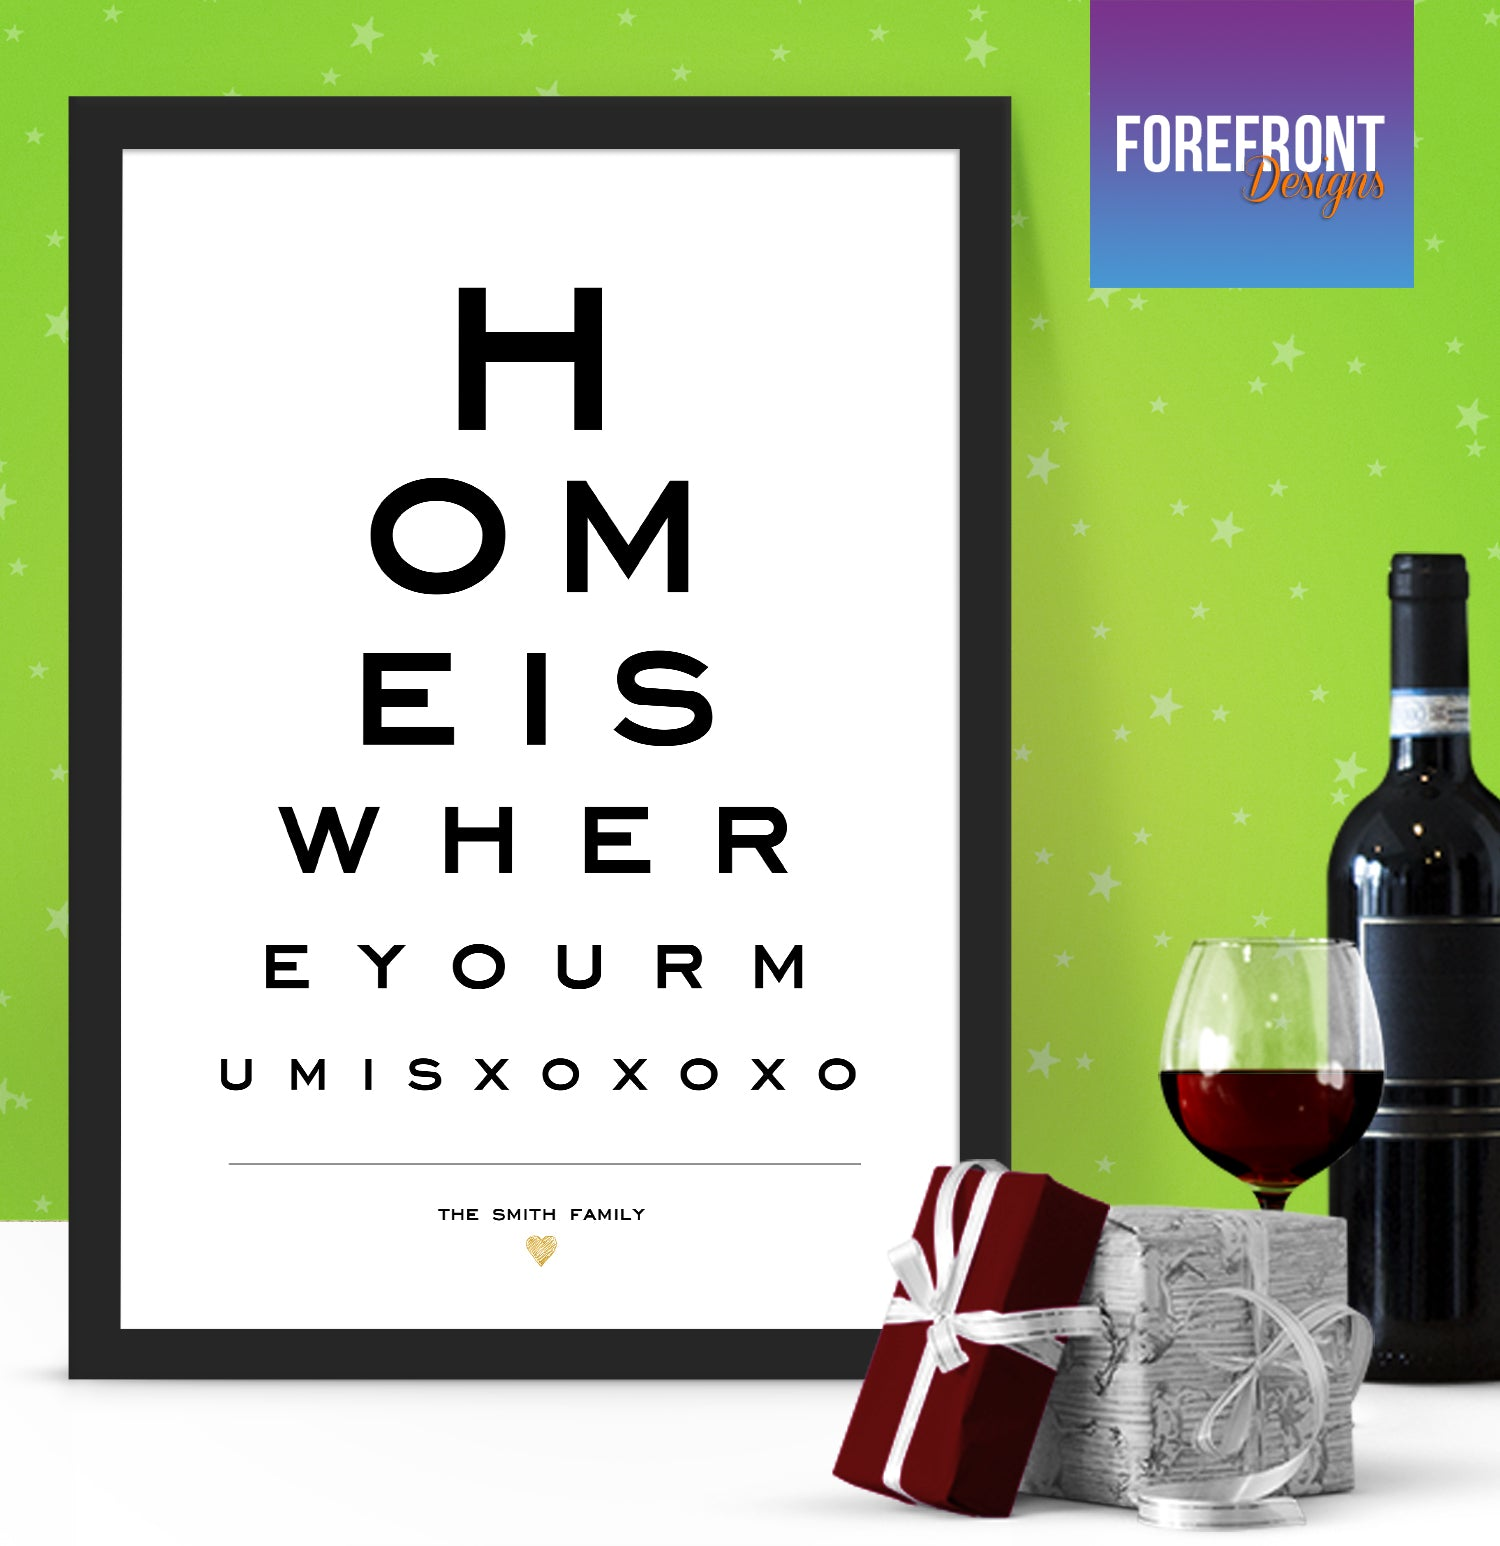 Personalised eye chart print ideal new familynew home gift personalised eye chart print ideal new familynew home gift forefrontdesigns geenschuldenfo Gallery